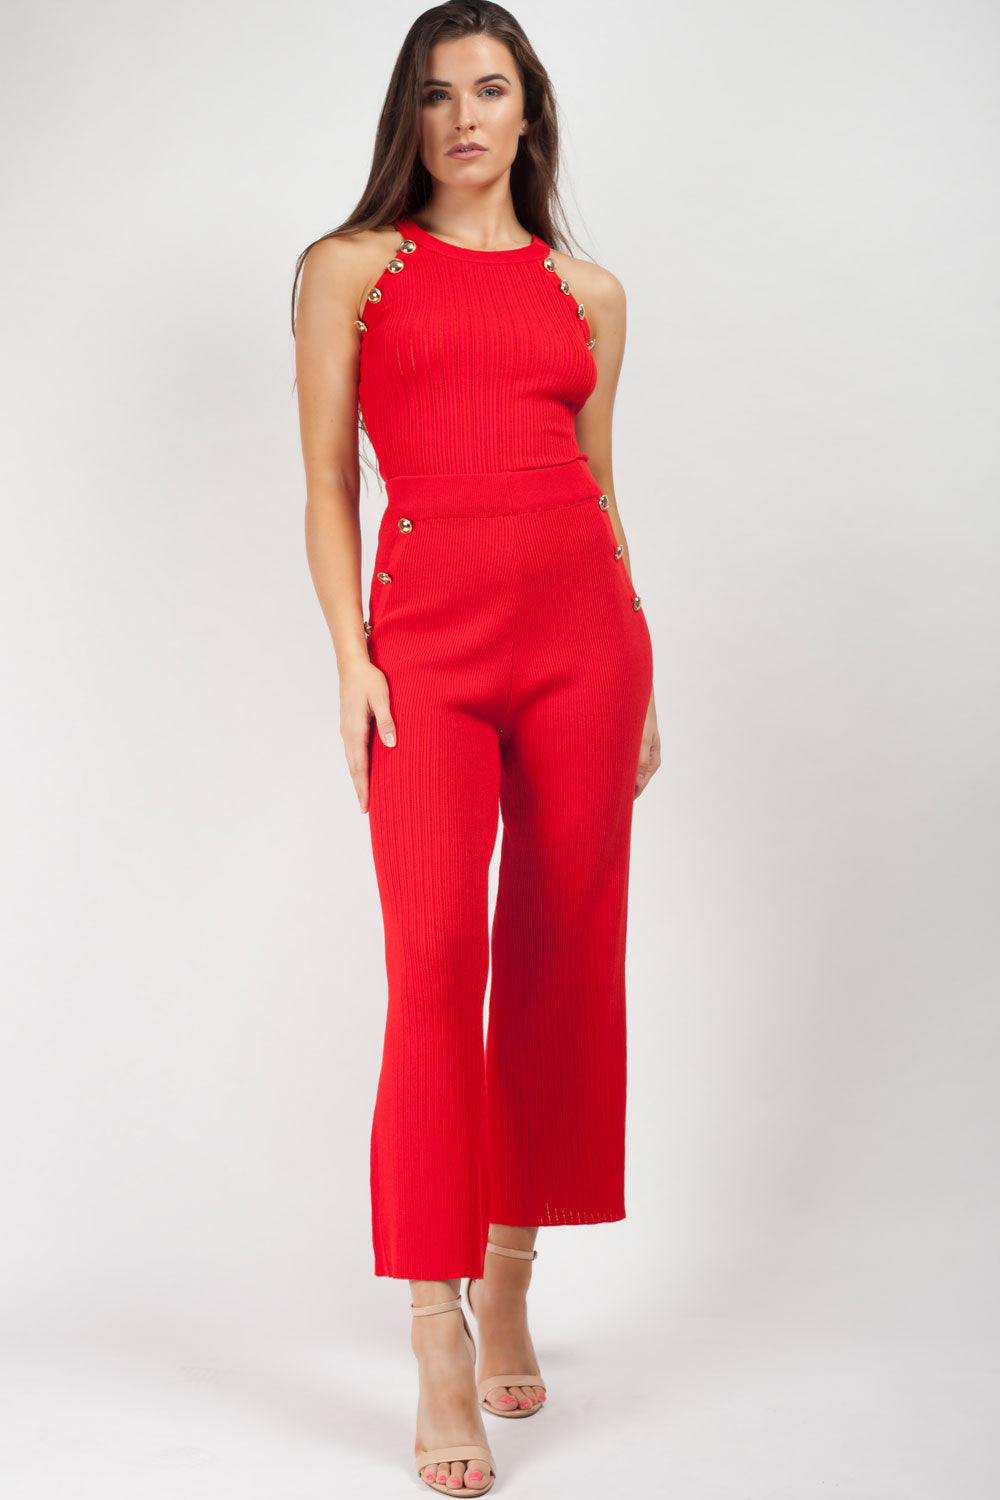 red knitted loungewear set with gold buttons